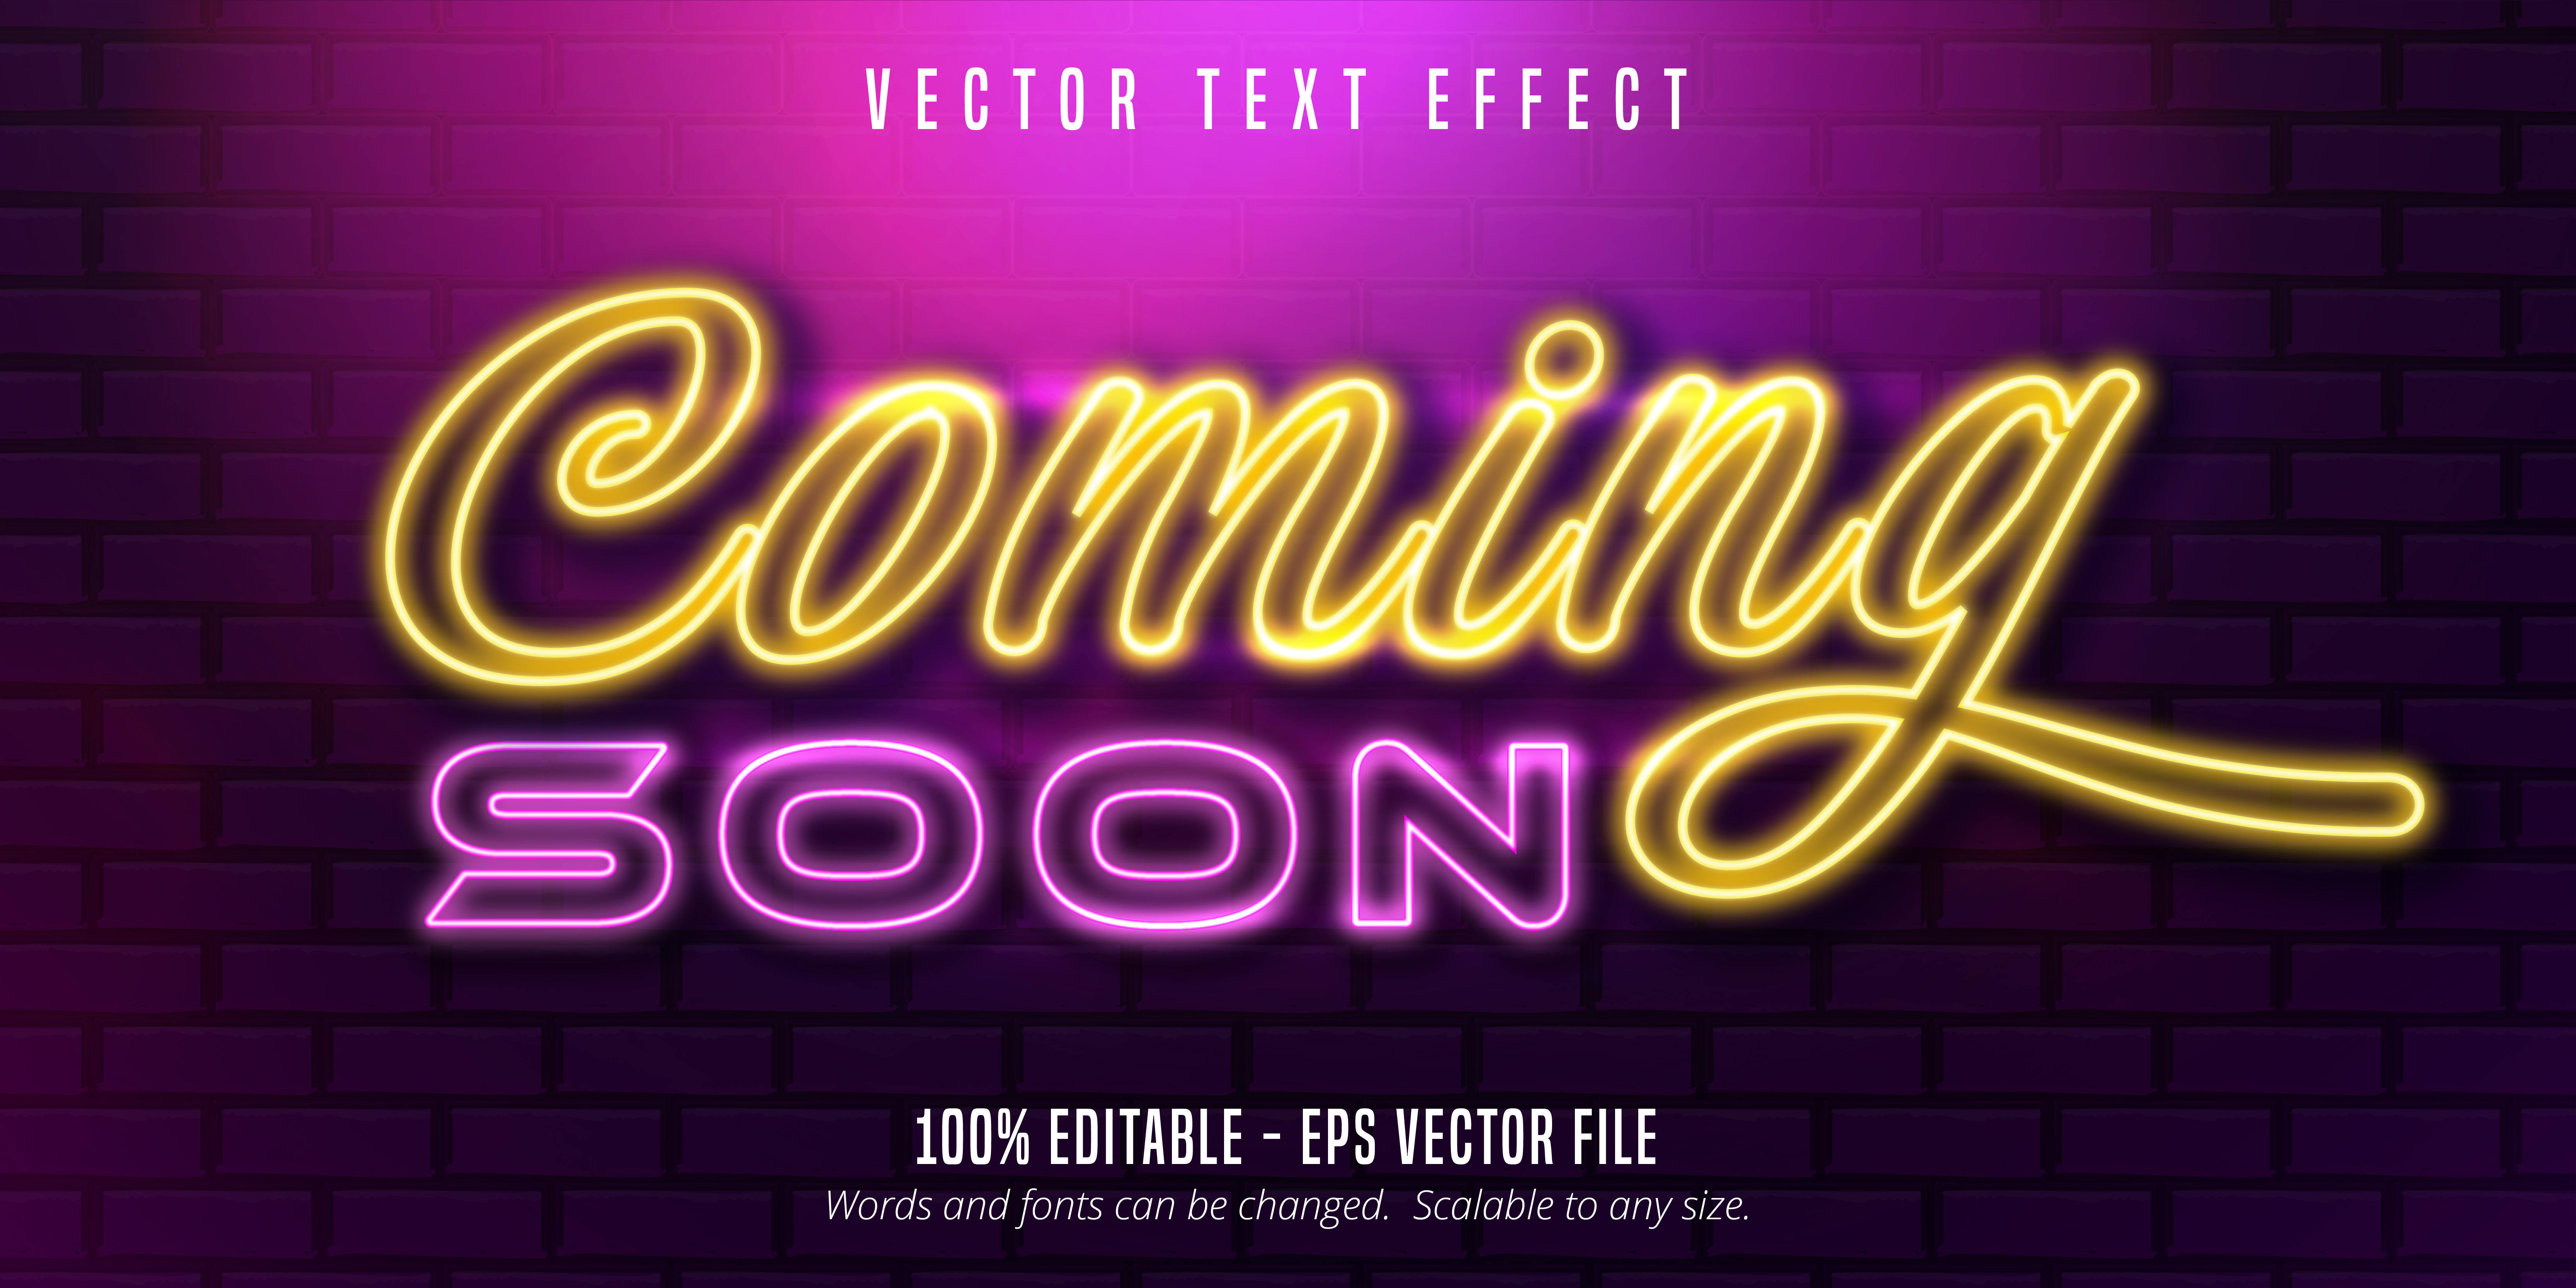 Coming Soon Neon Style Editable Text Effect Download Free Vectors Clipart Graphics Vector Art